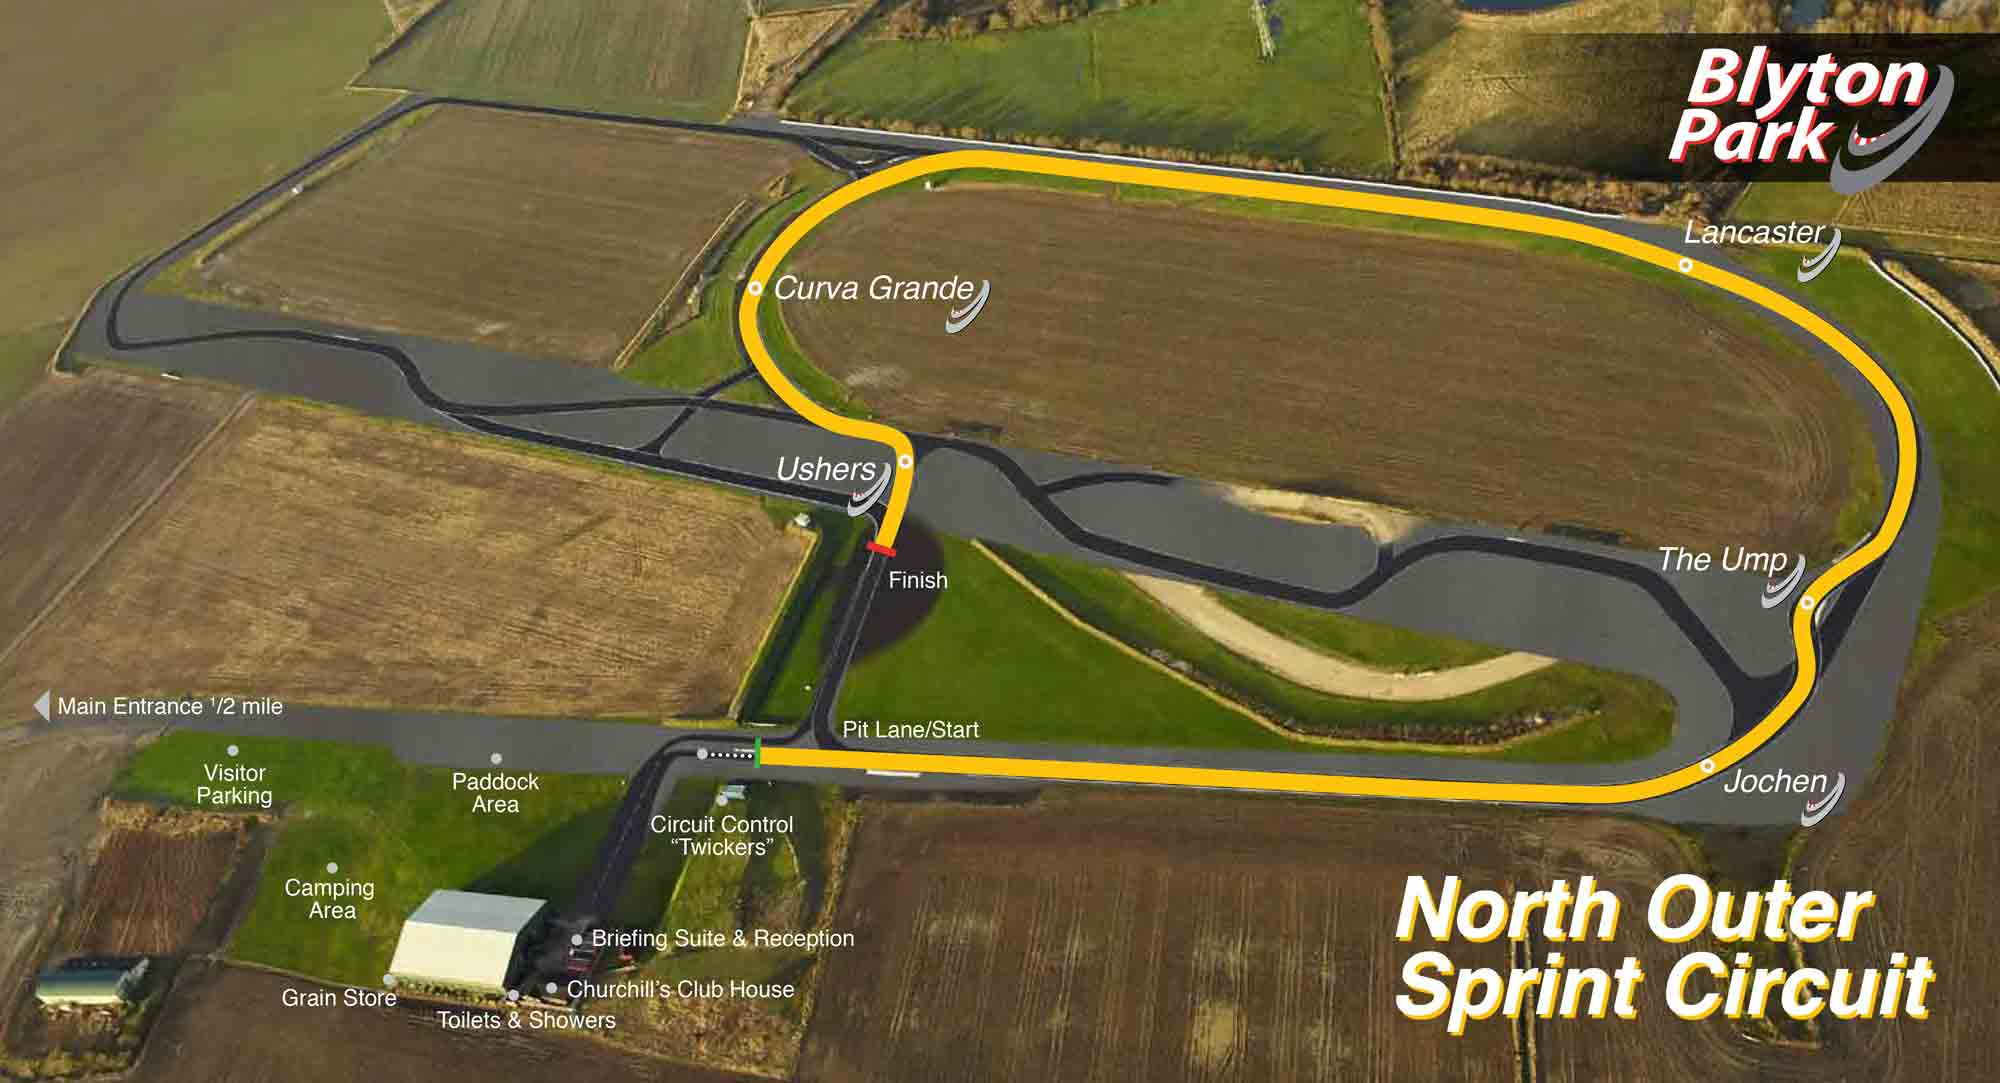 North-Outer-Sprint-Circuit.jpg